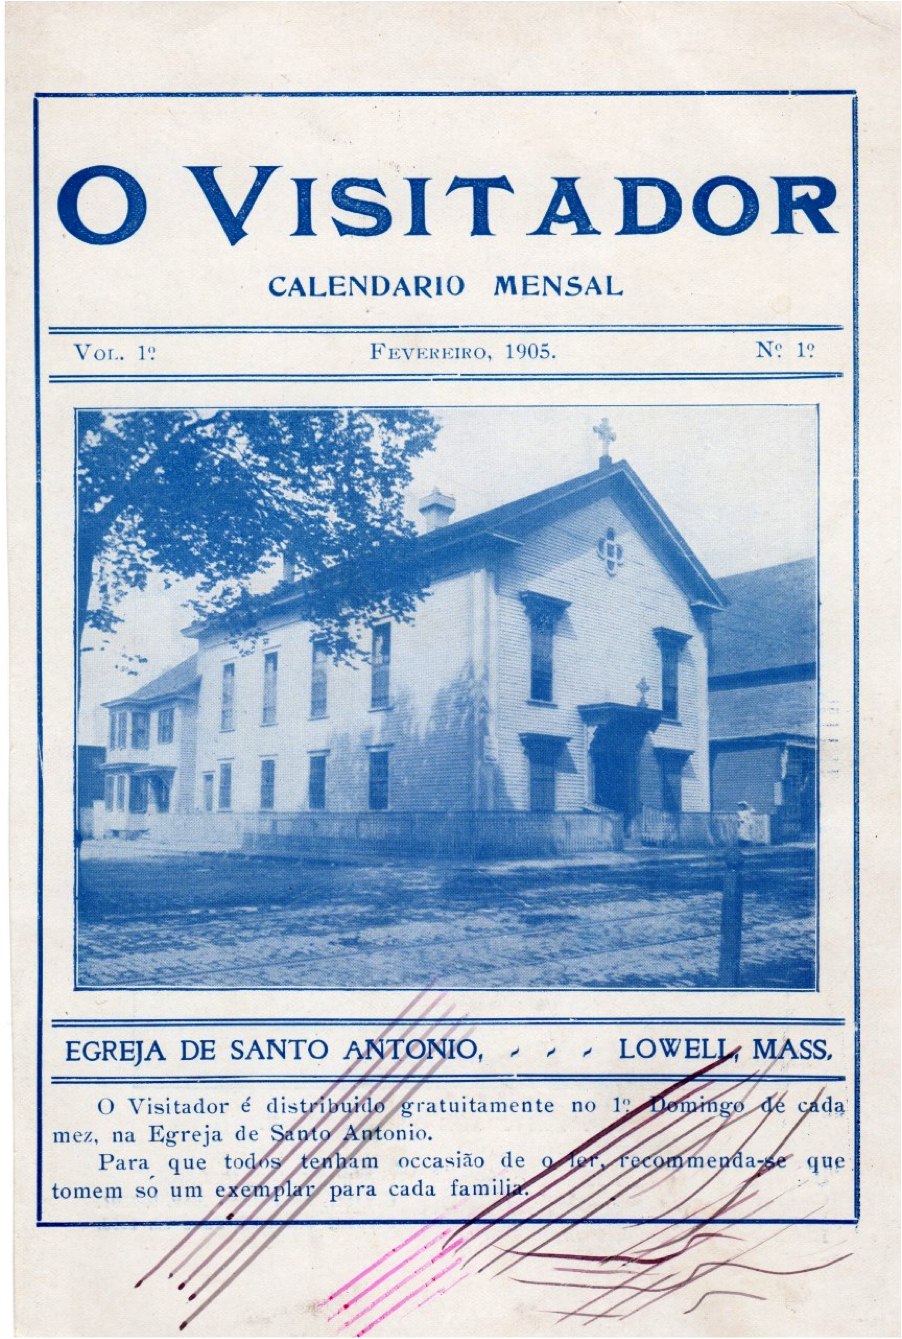 Calendario 1946.Portuguese Photographs Center For Lowell History